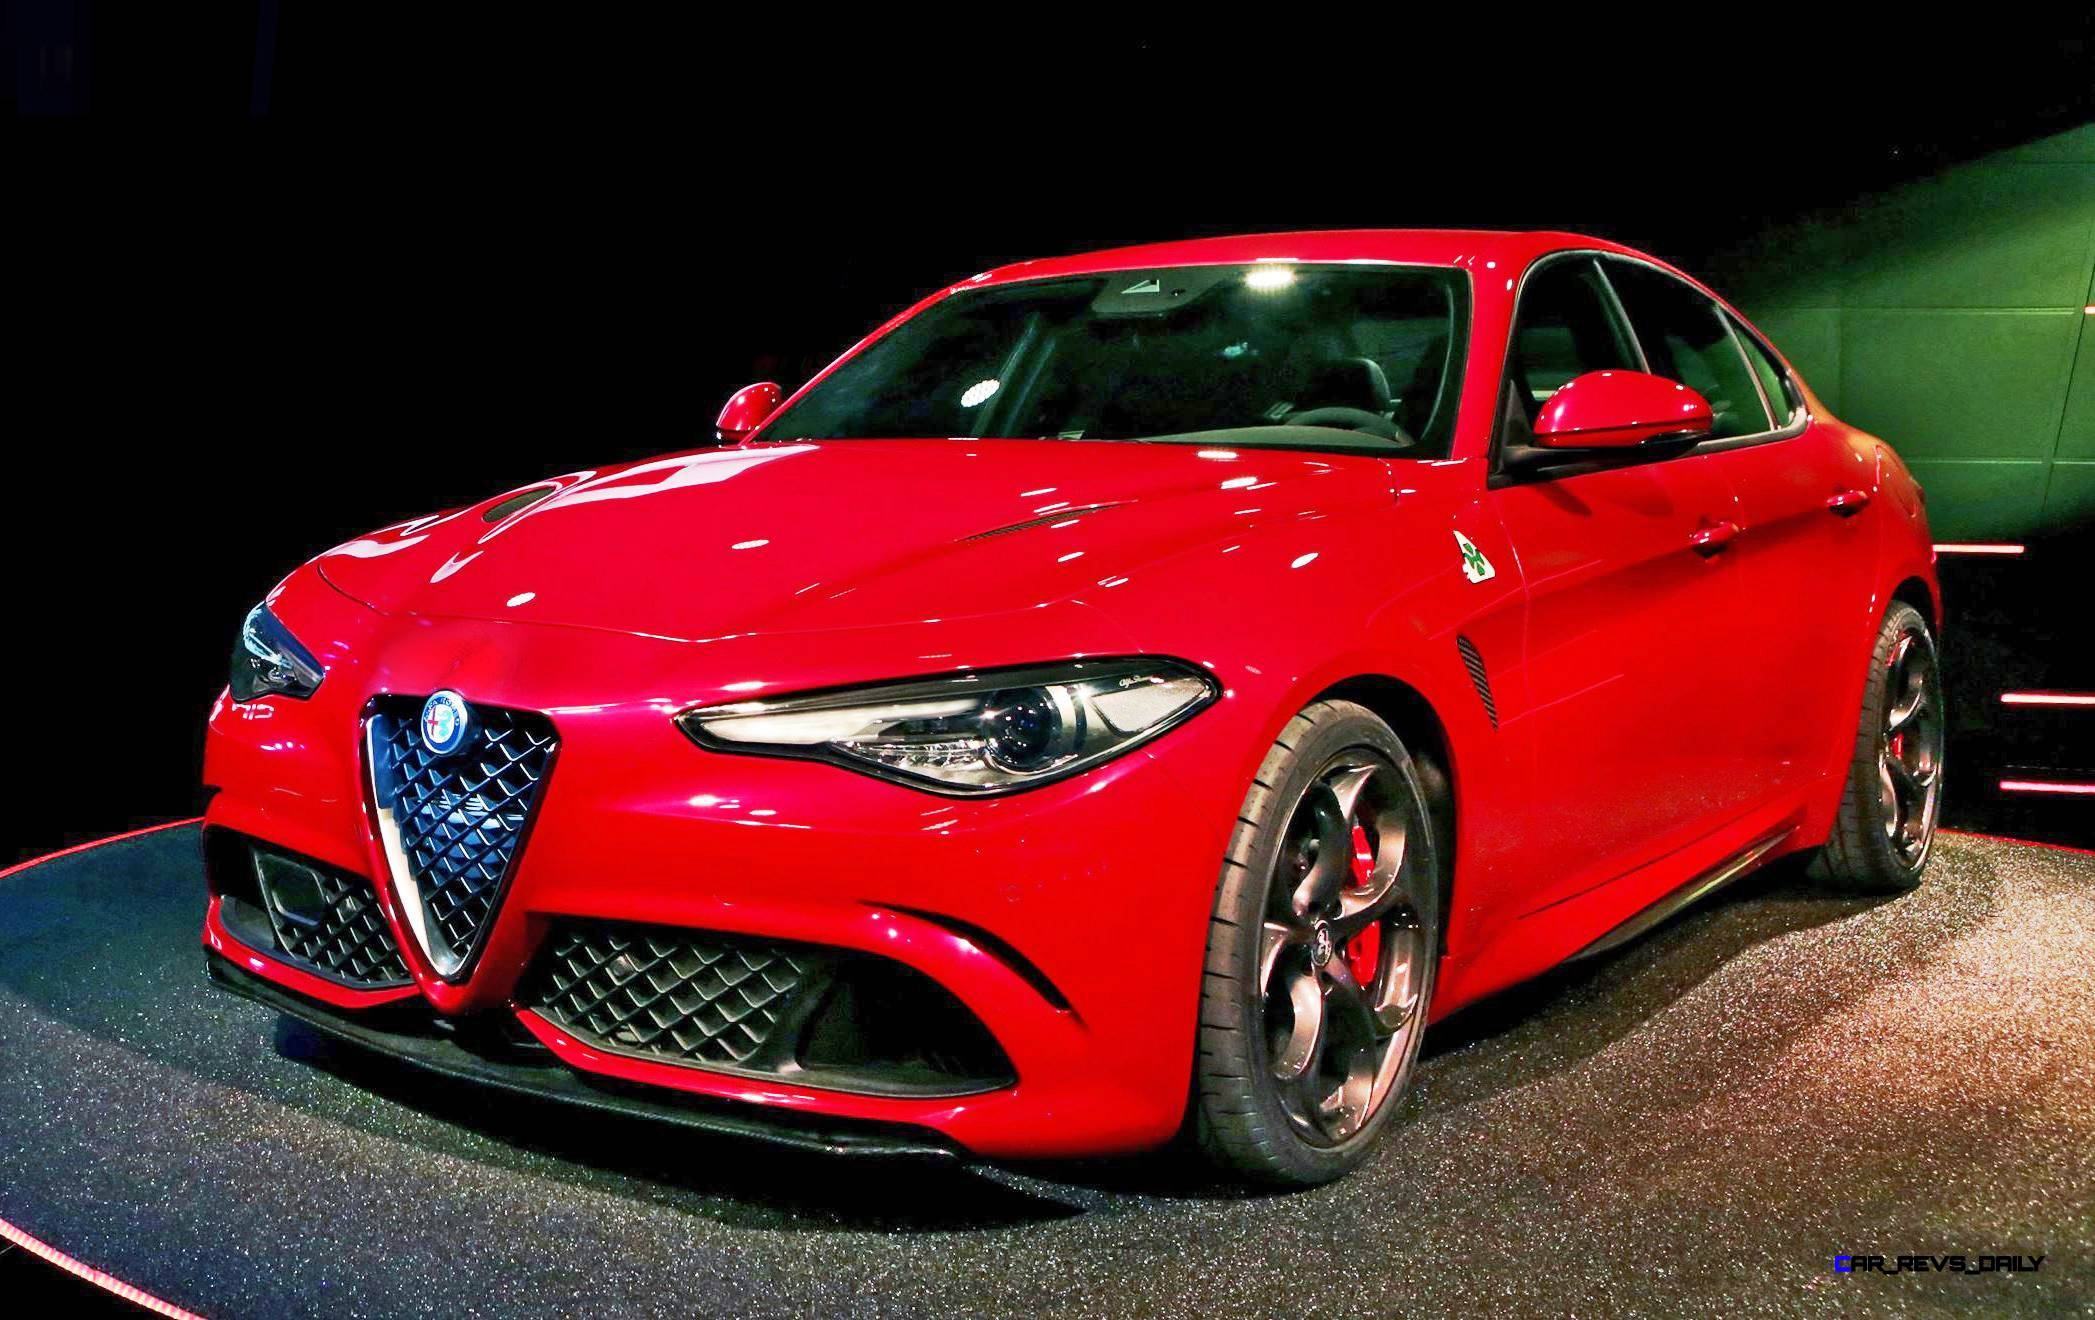 2016 alfa romeo giulia color test 4. Black Bedroom Furniture Sets. Home Design Ideas